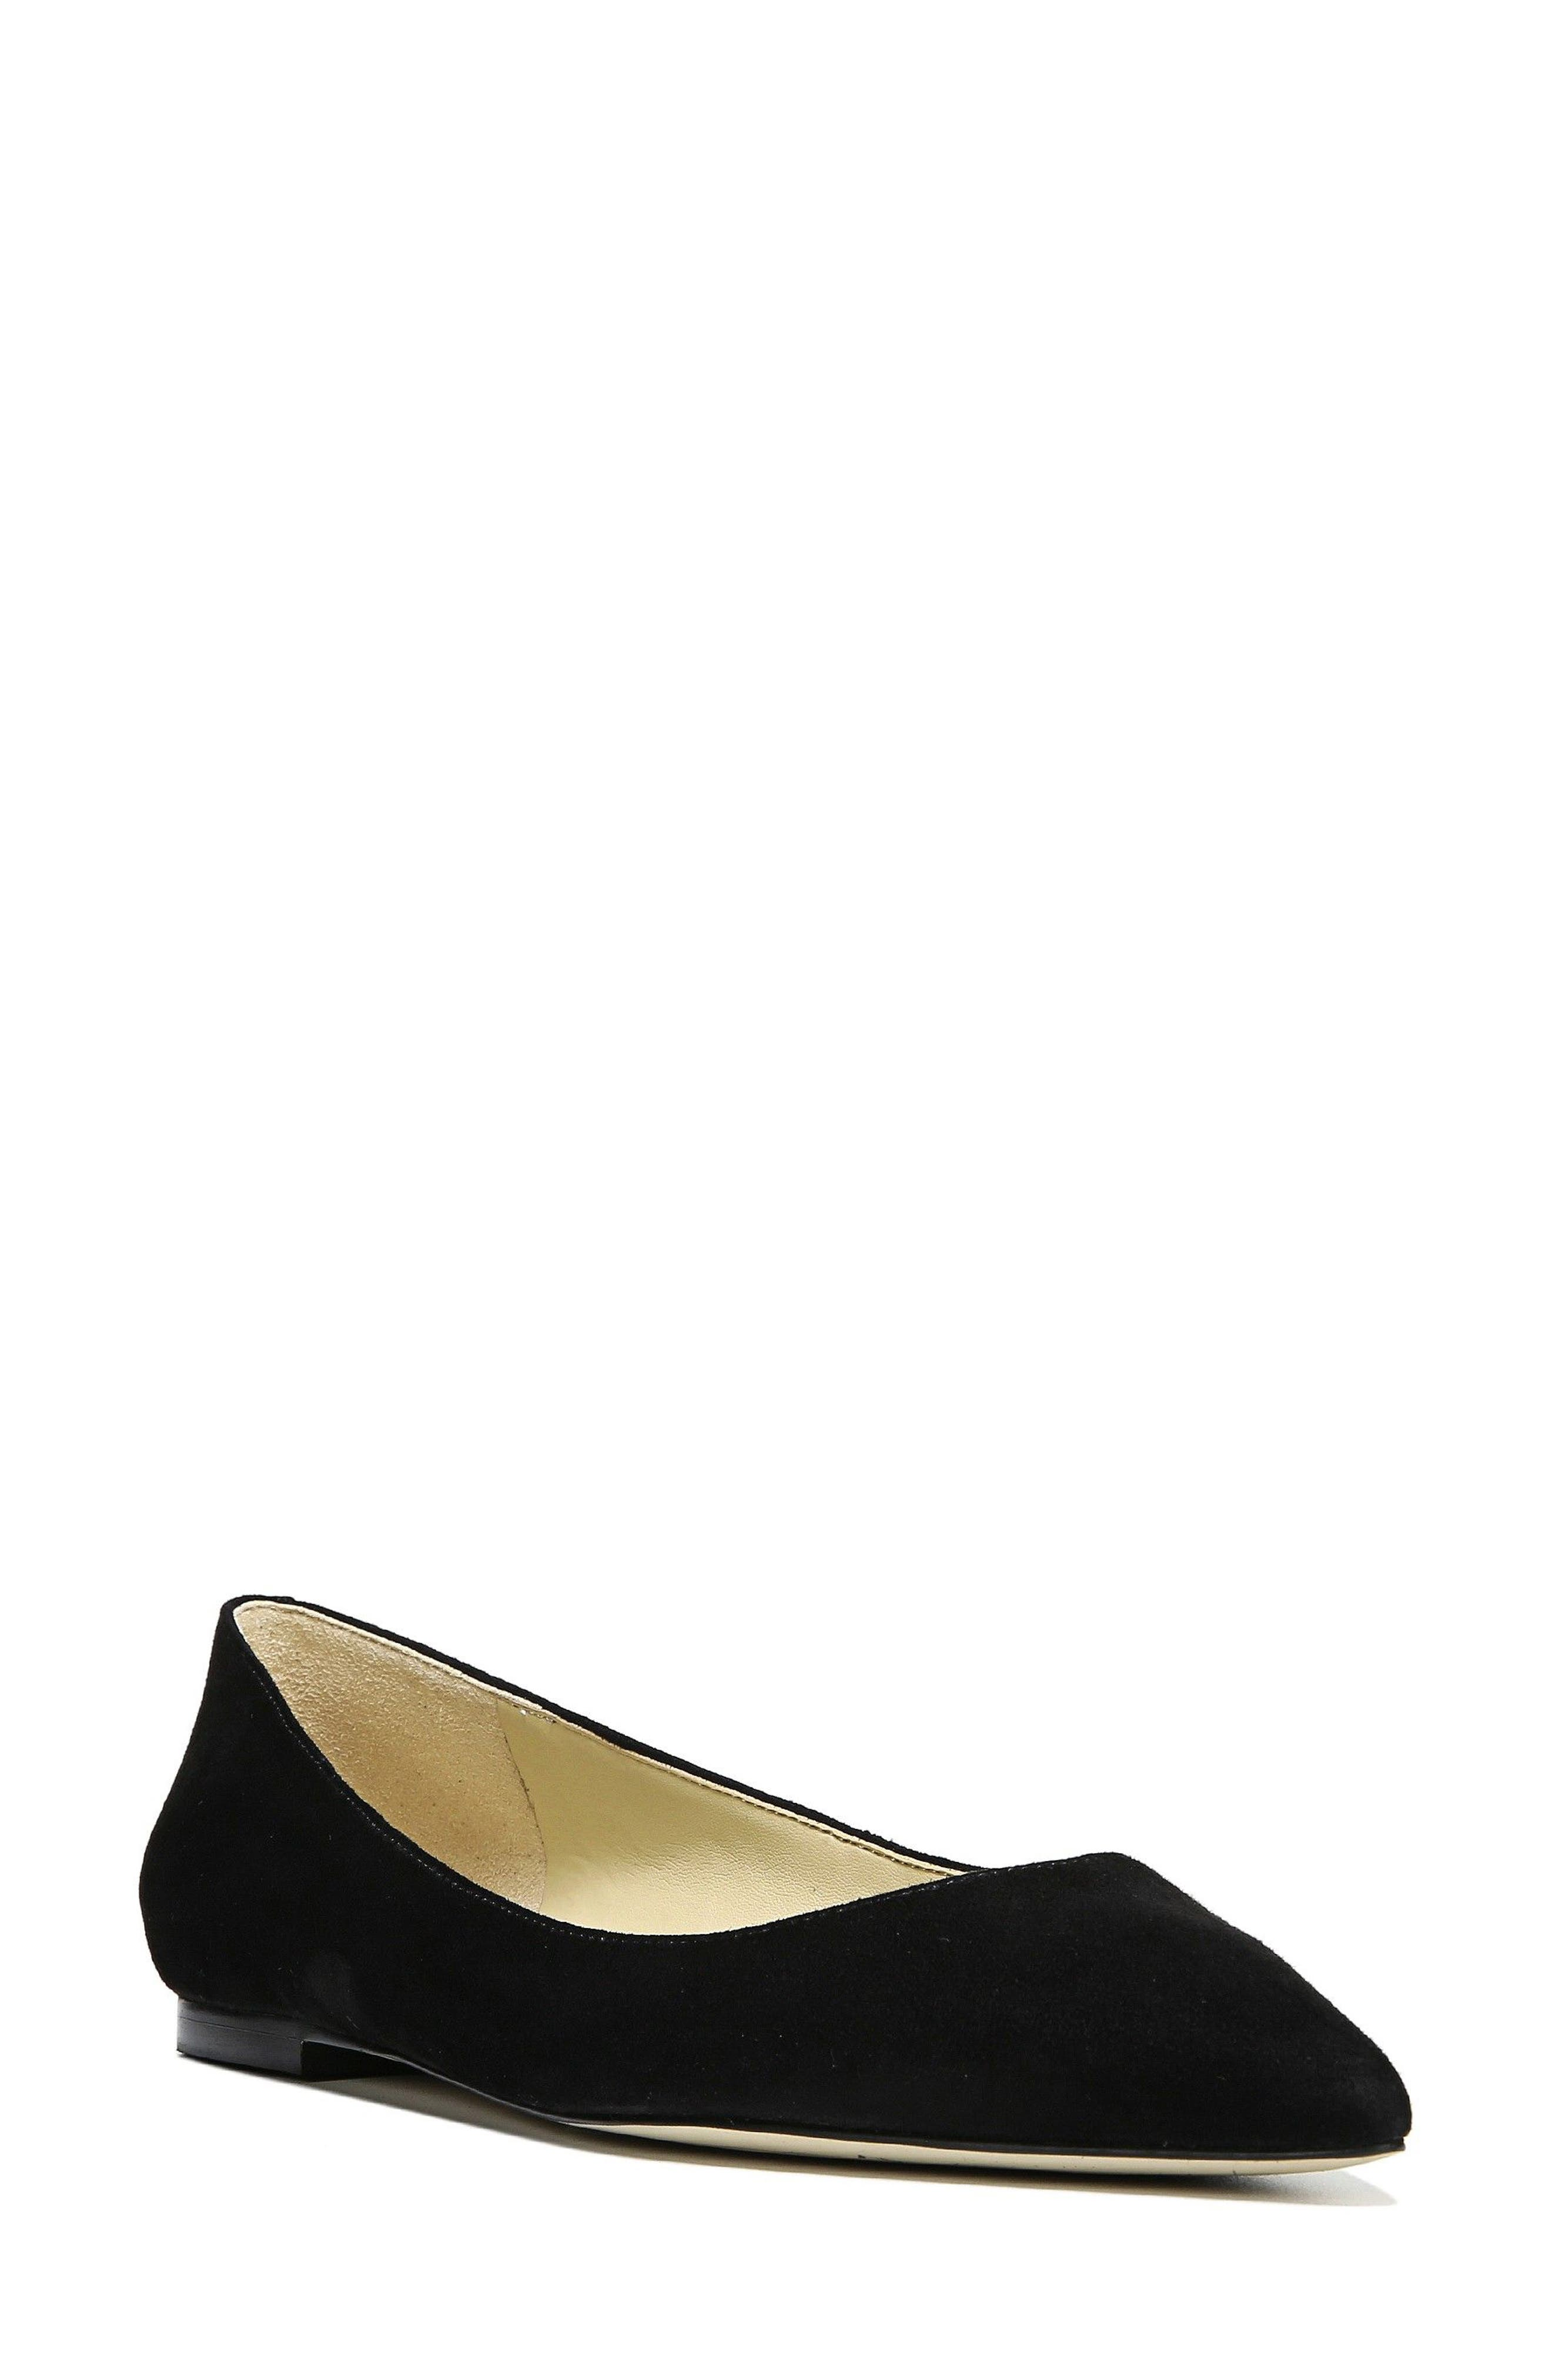 'Rae' Pointy Toe Ballet Flat,                         Main,                         color, Black Suede